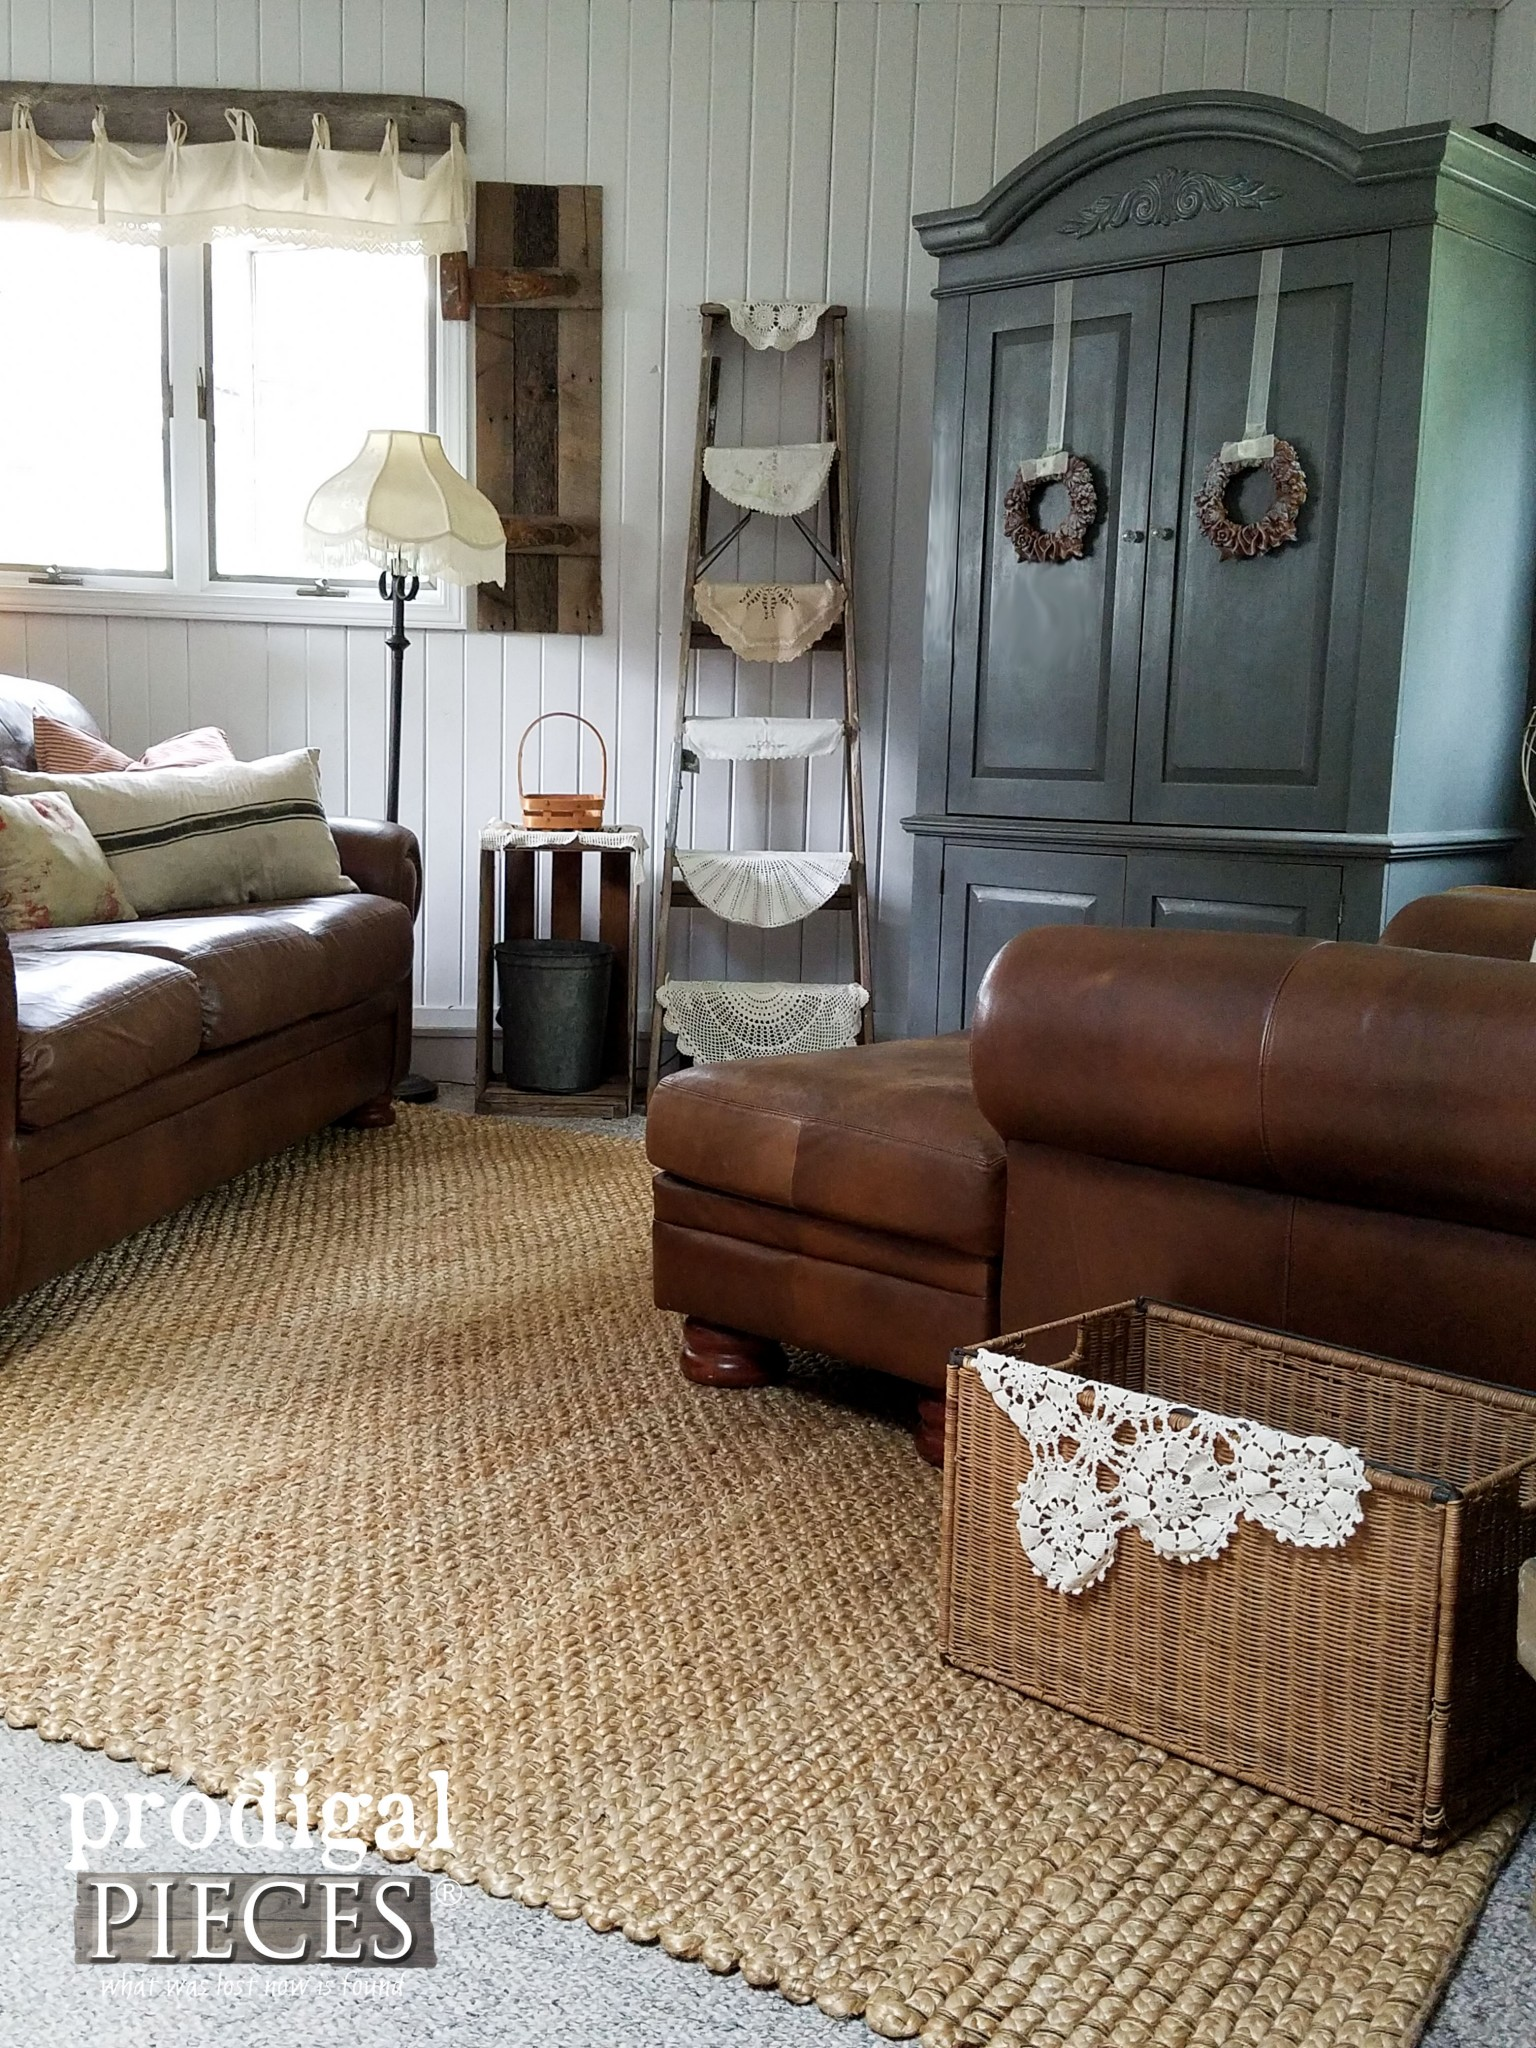 Rustic Farmhouse Style Family Room with Jute Area Rug | Prodigal Pieces | www.prodigalpieces.com